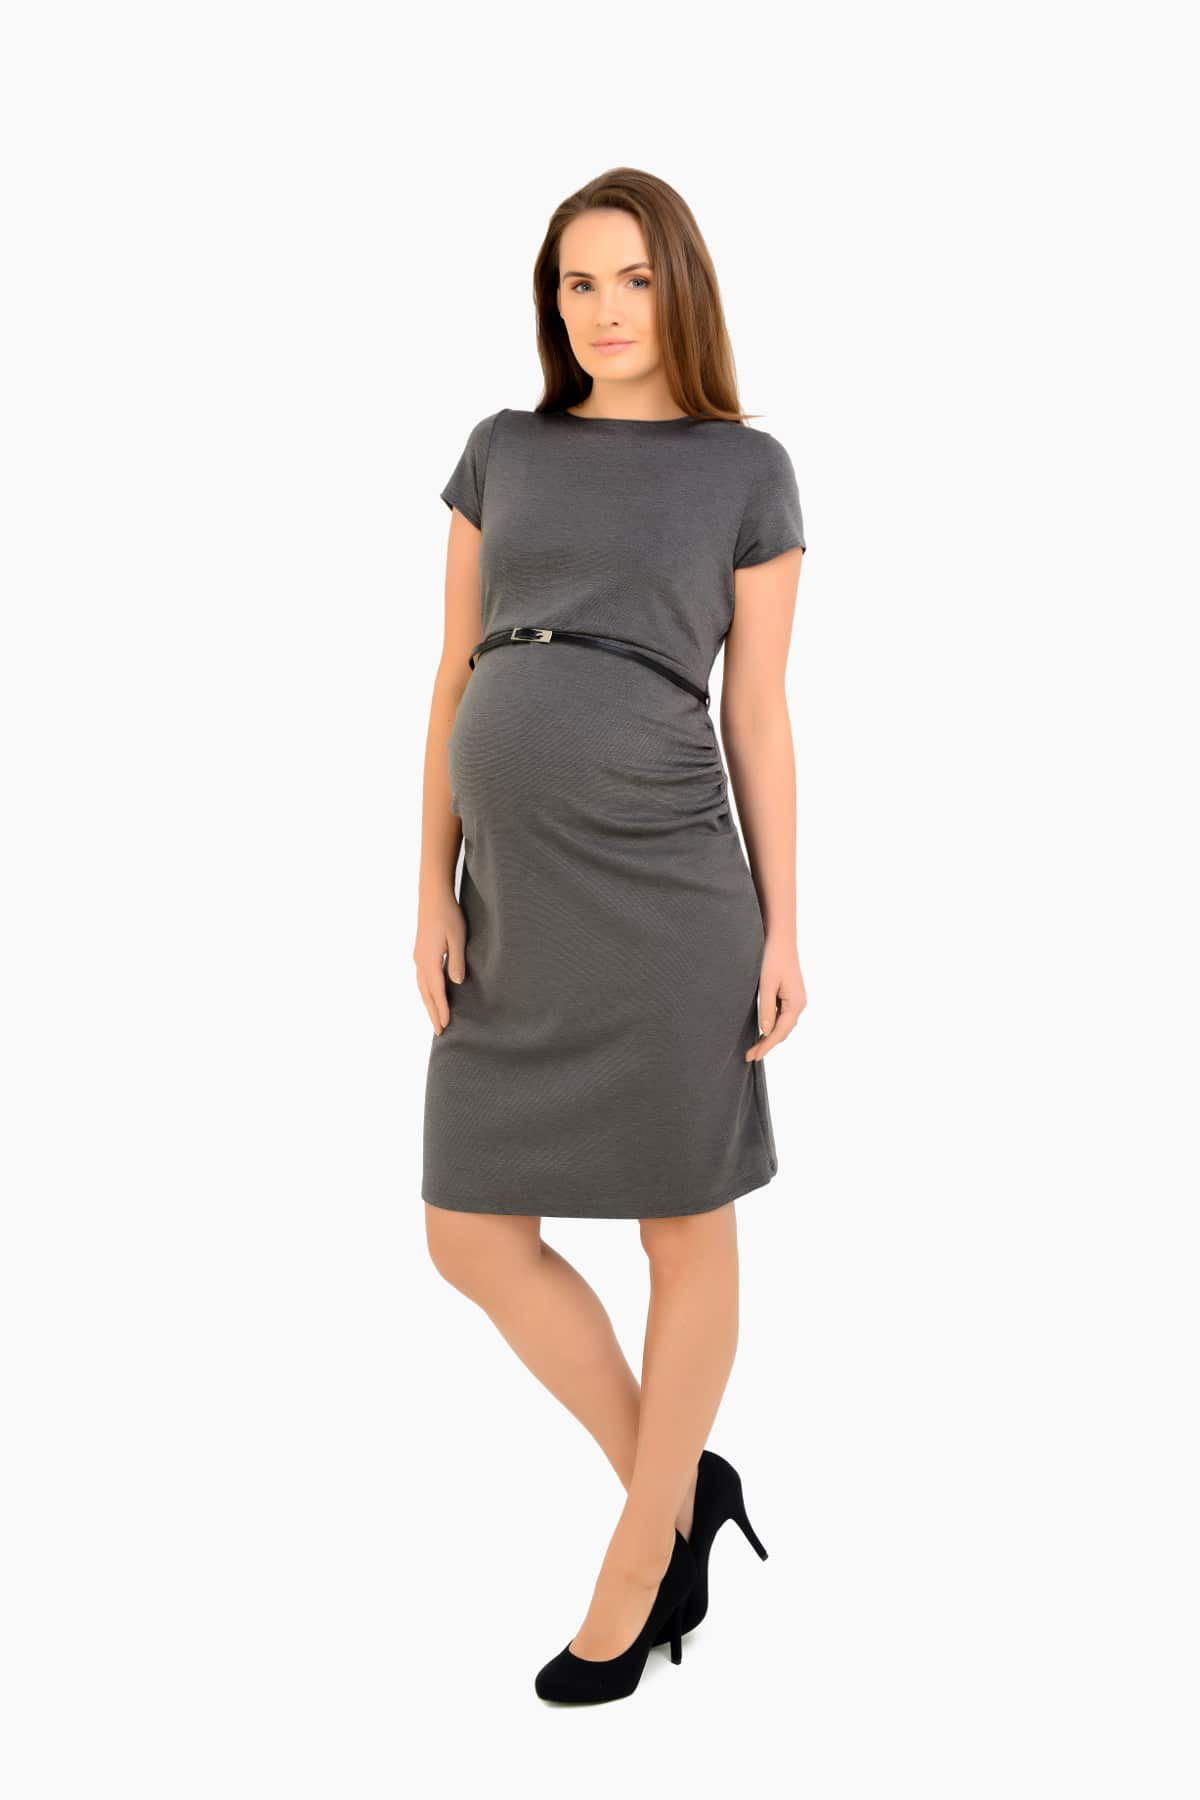 Maternity Shift Dress - Ideal for Work/ Office